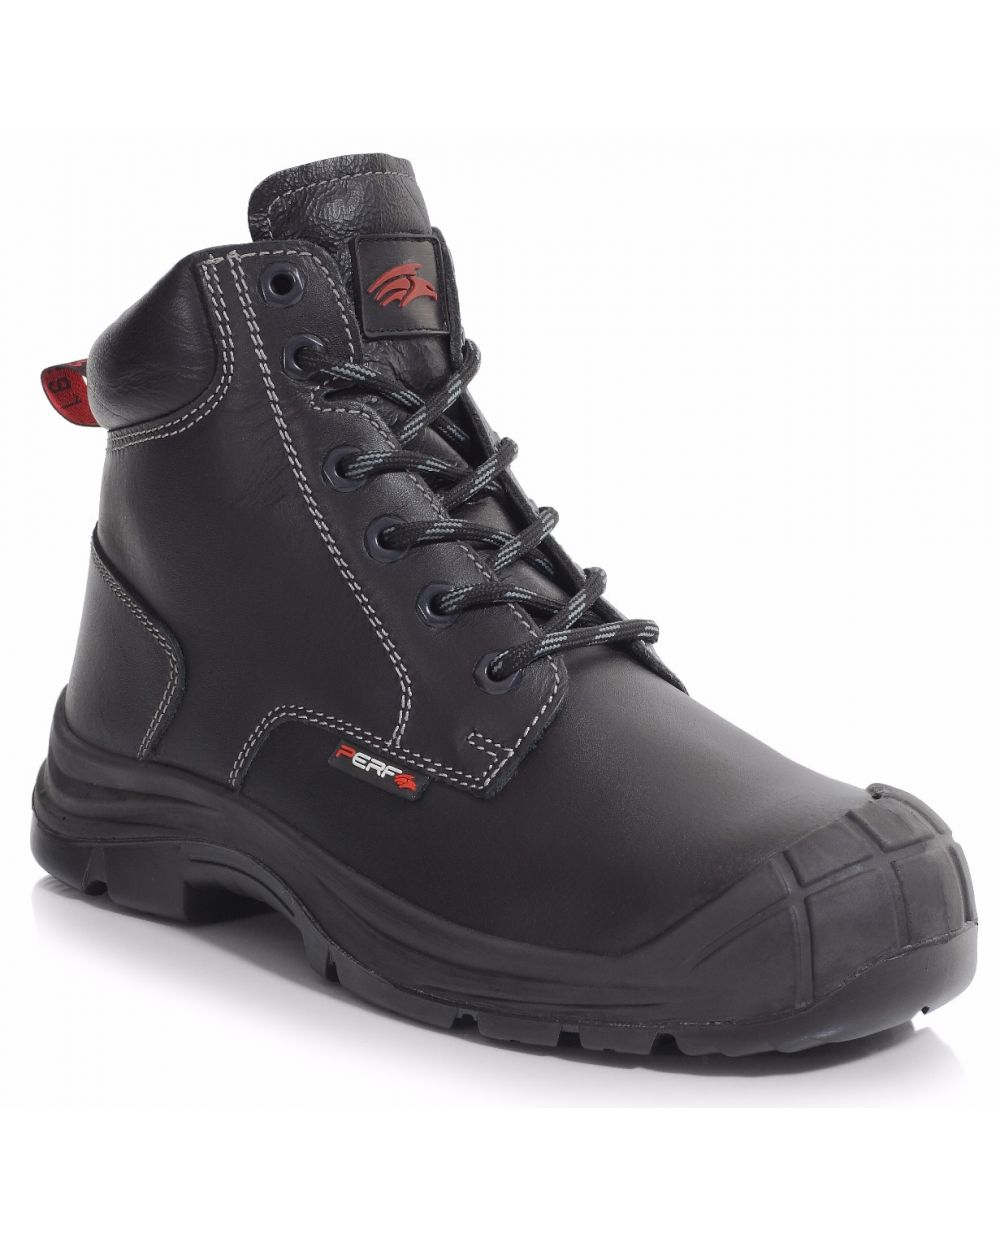 Sharp - Cut Resistant Boot